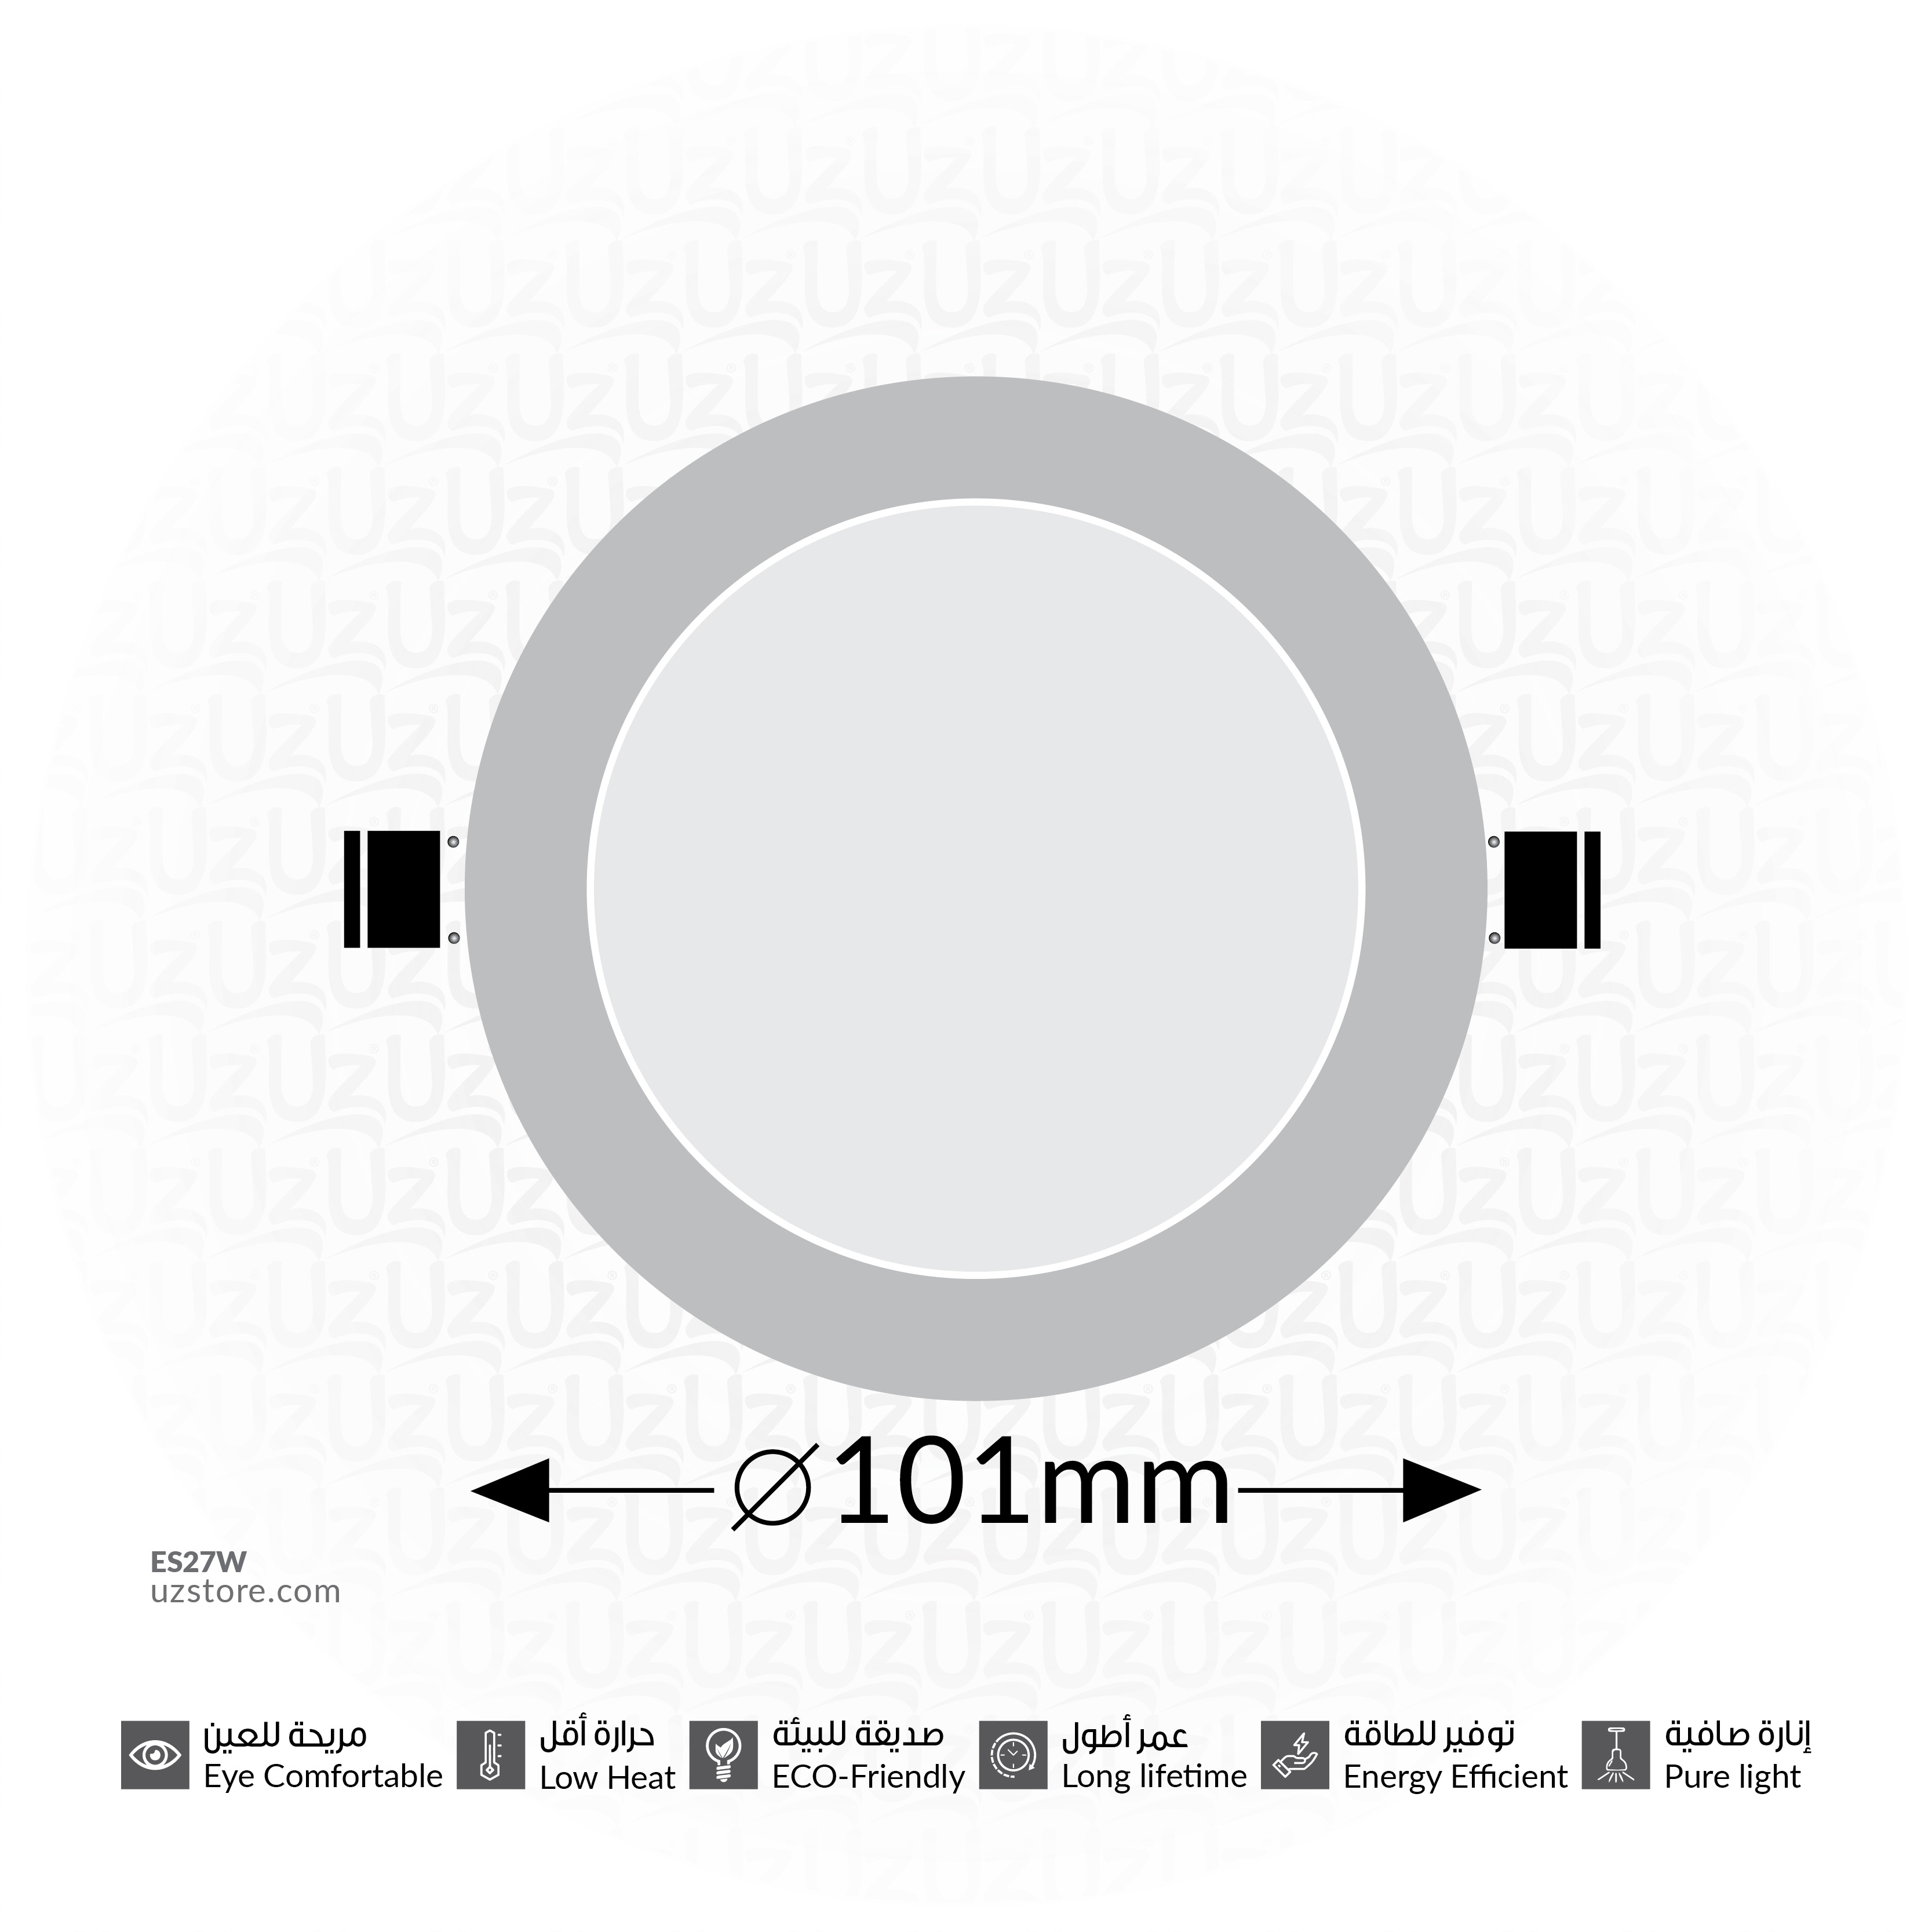 LED spot Light (SAMSUNG 3001) 6W - Warm White